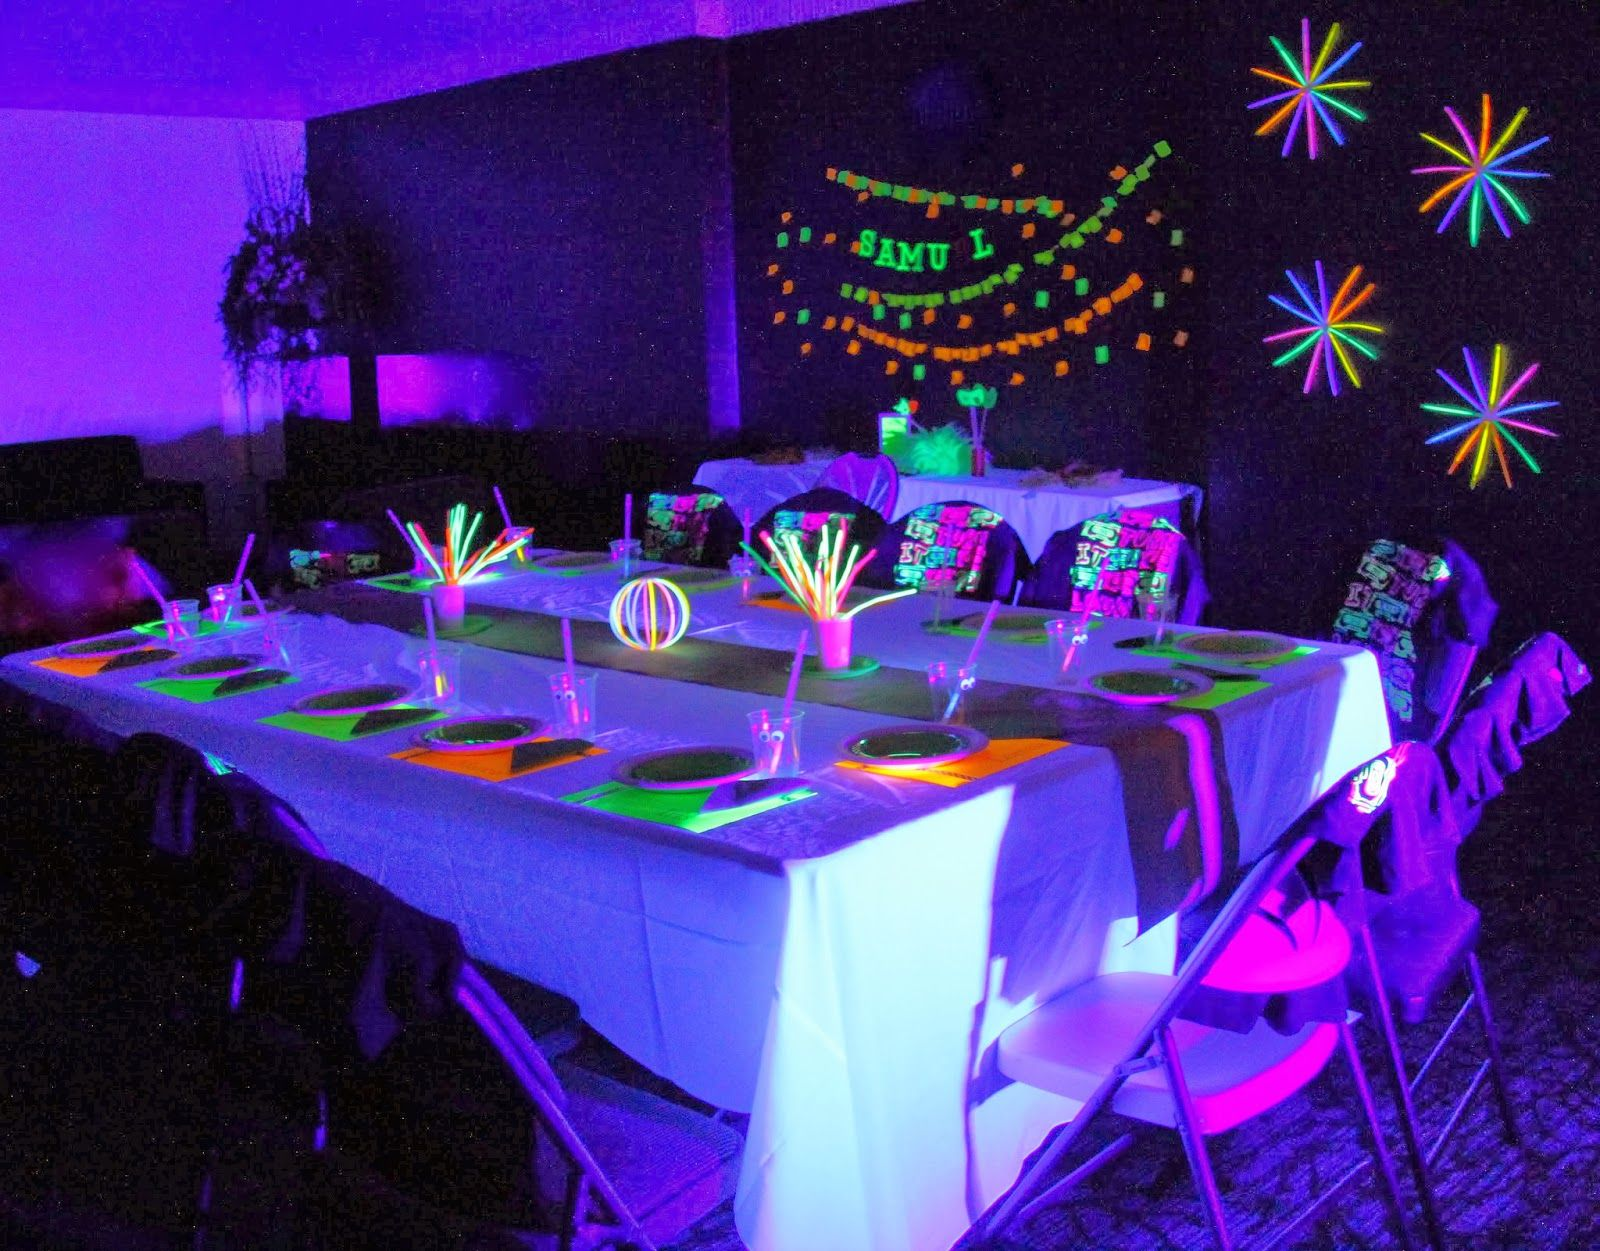 anniversaire soir e fluo articles de d co et bracelets fluo pas cher sur birthday. Black Bedroom Furniture Sets. Home Design Ideas